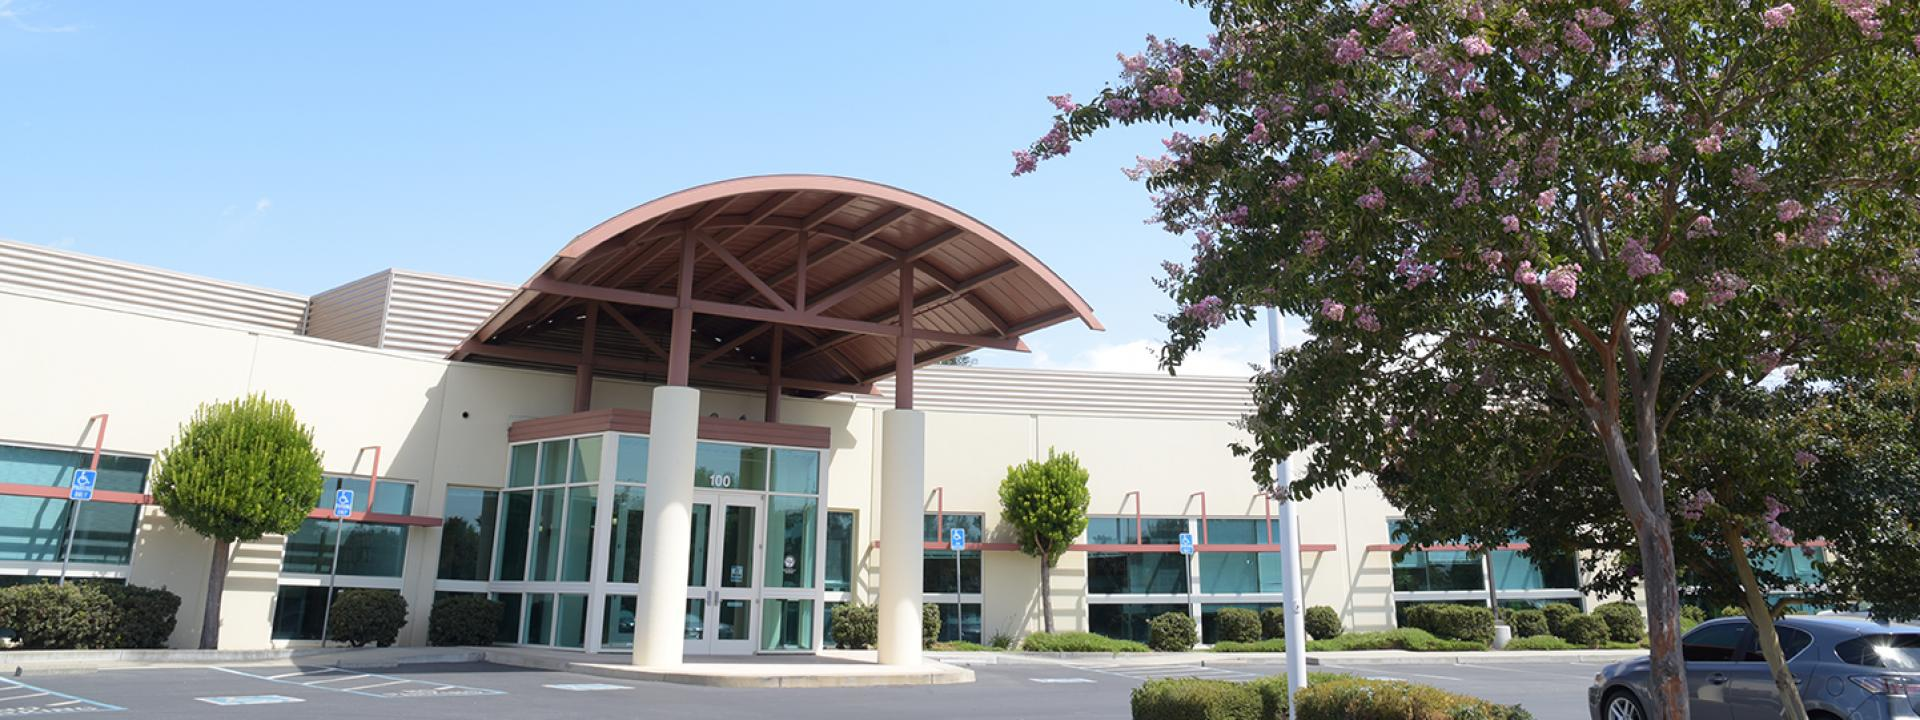 The front of Zone 7's administrative building with blue sky, cloud, and trees